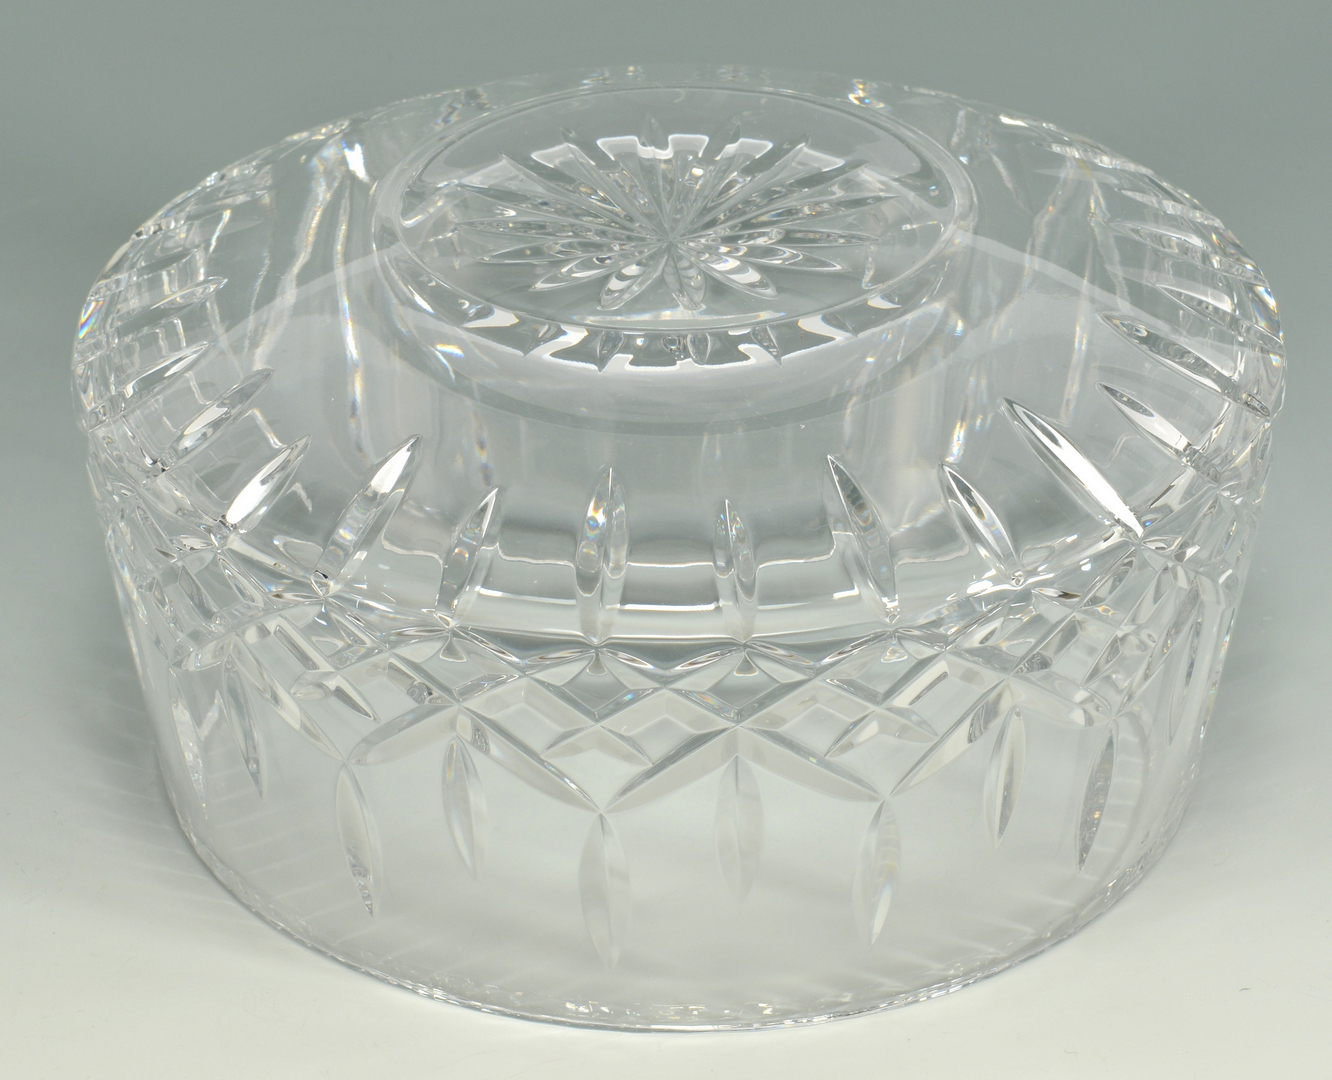 Lot 3088192: Grouping of 4 Crystal Bowls, 3 Orrefors